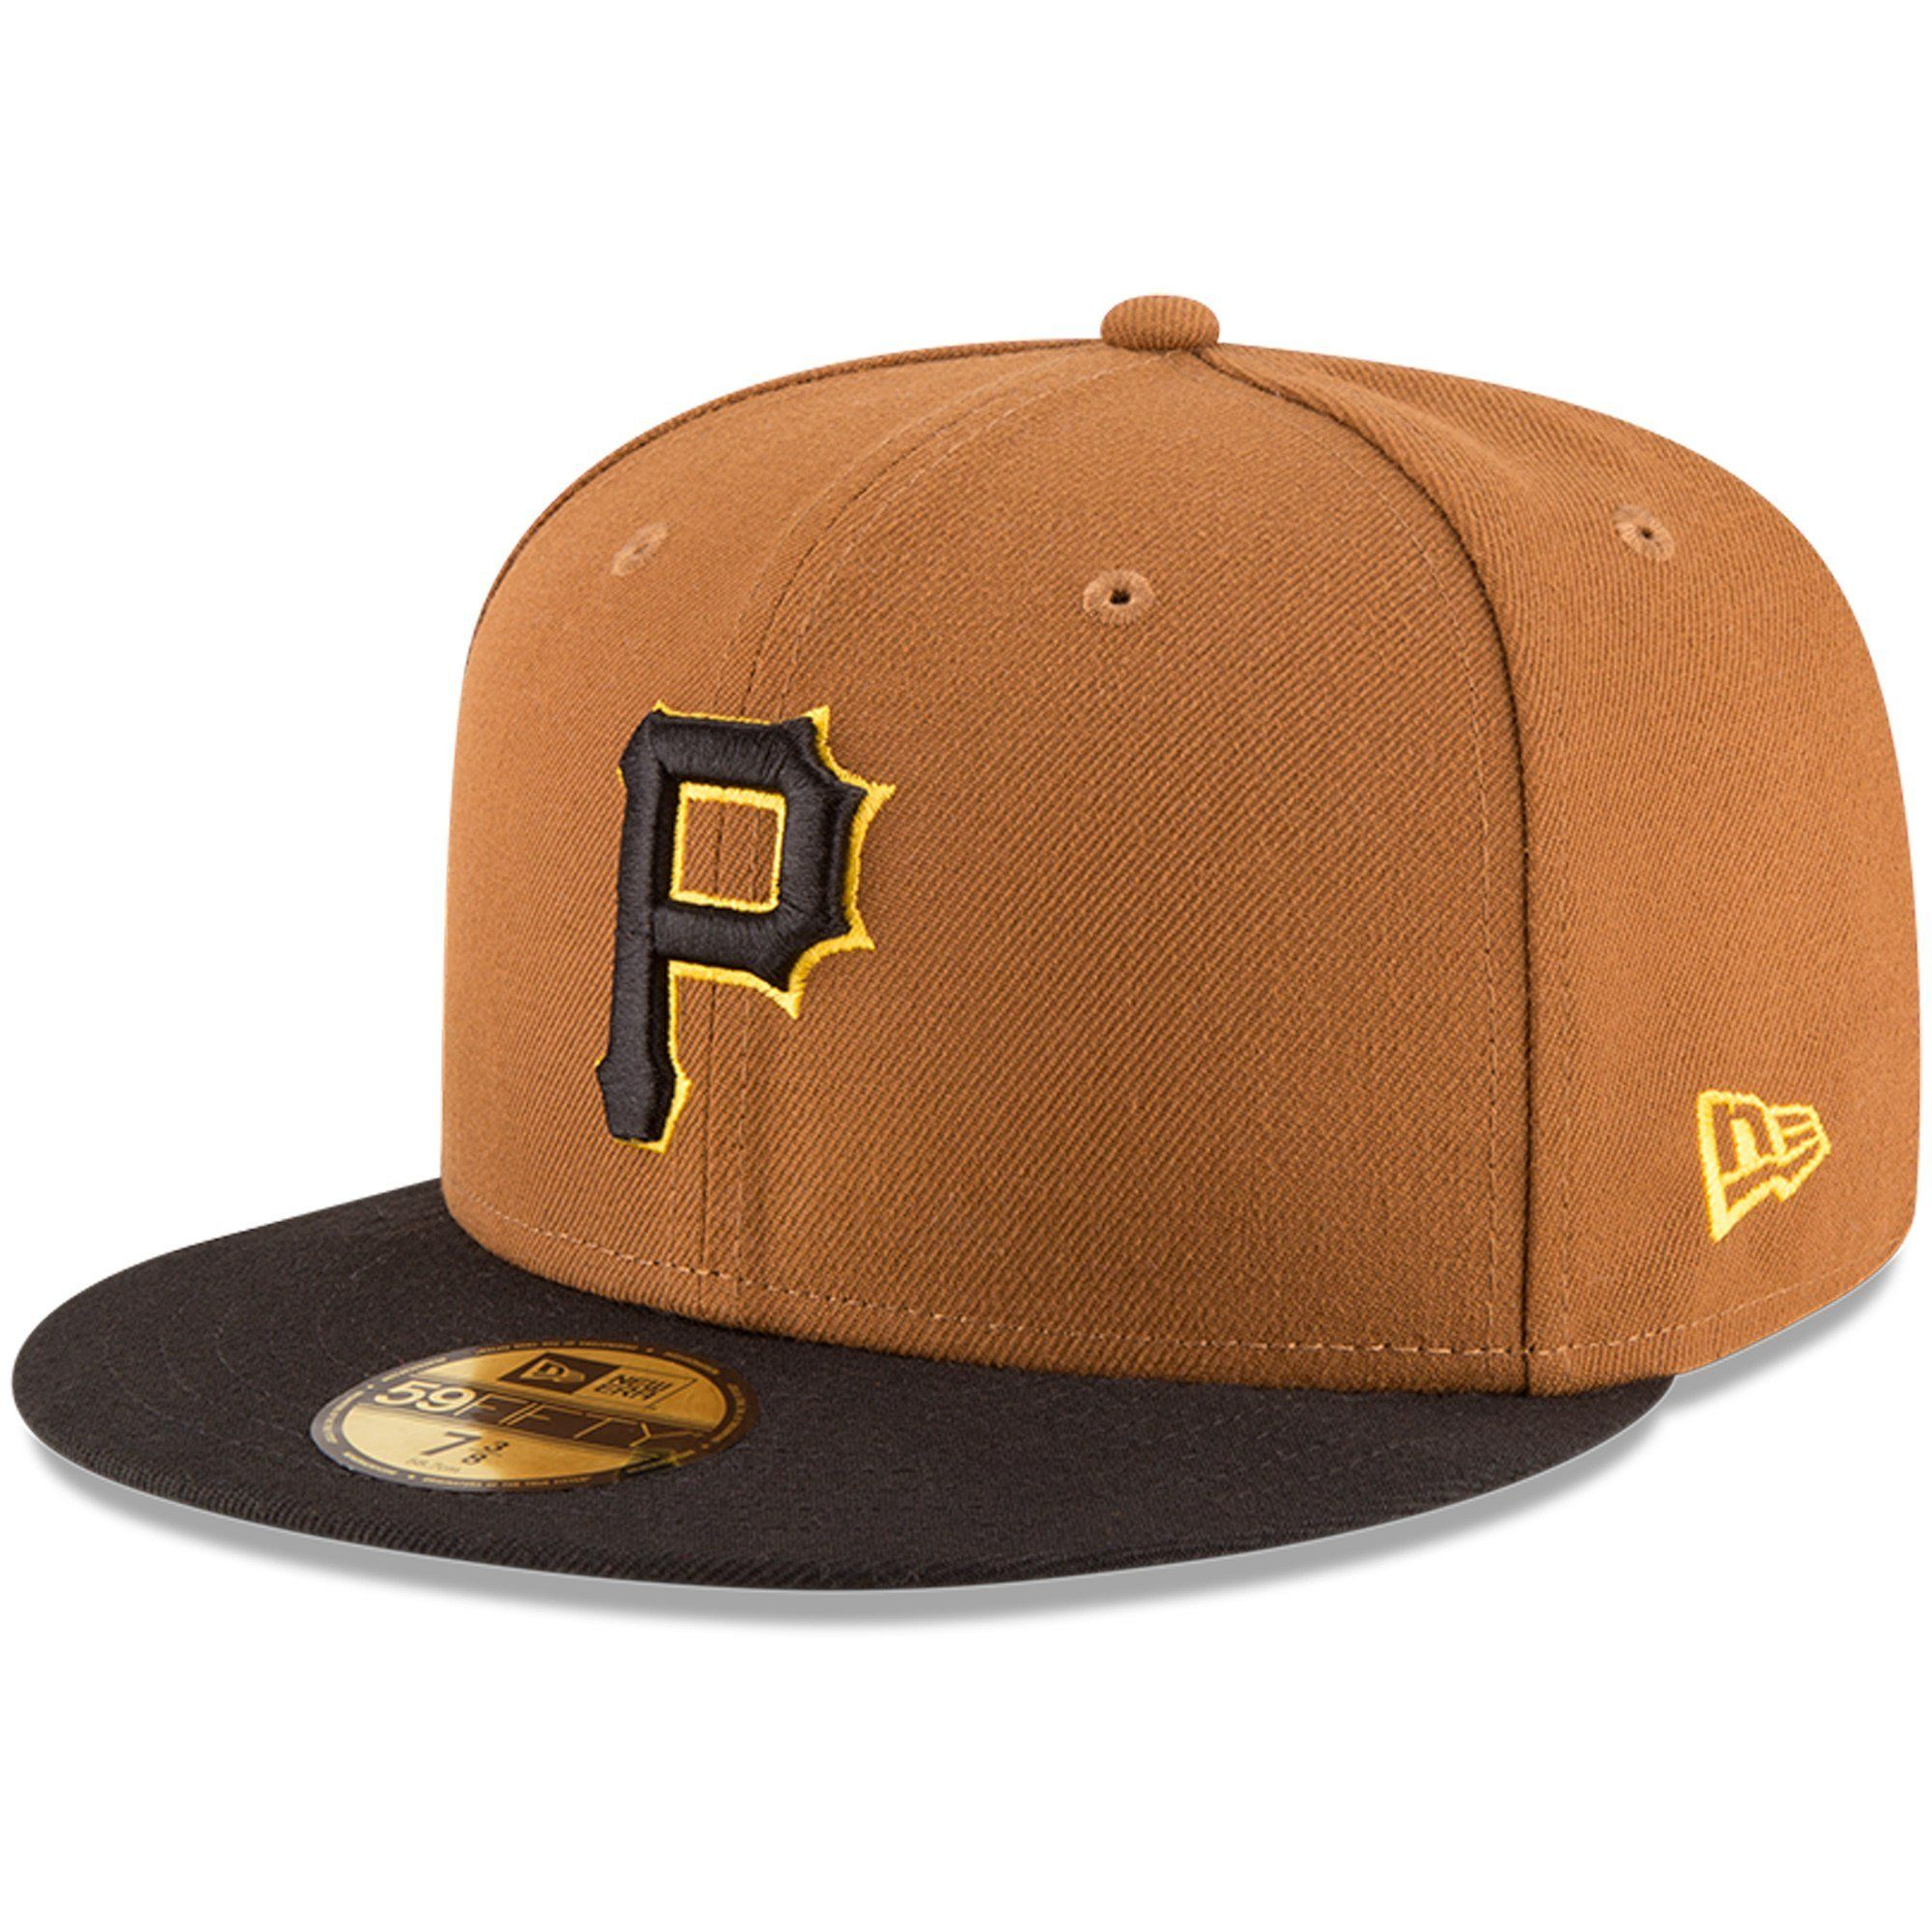 New Era 59fifty MLB On Field Fitted Hat Cap Pittsburgh